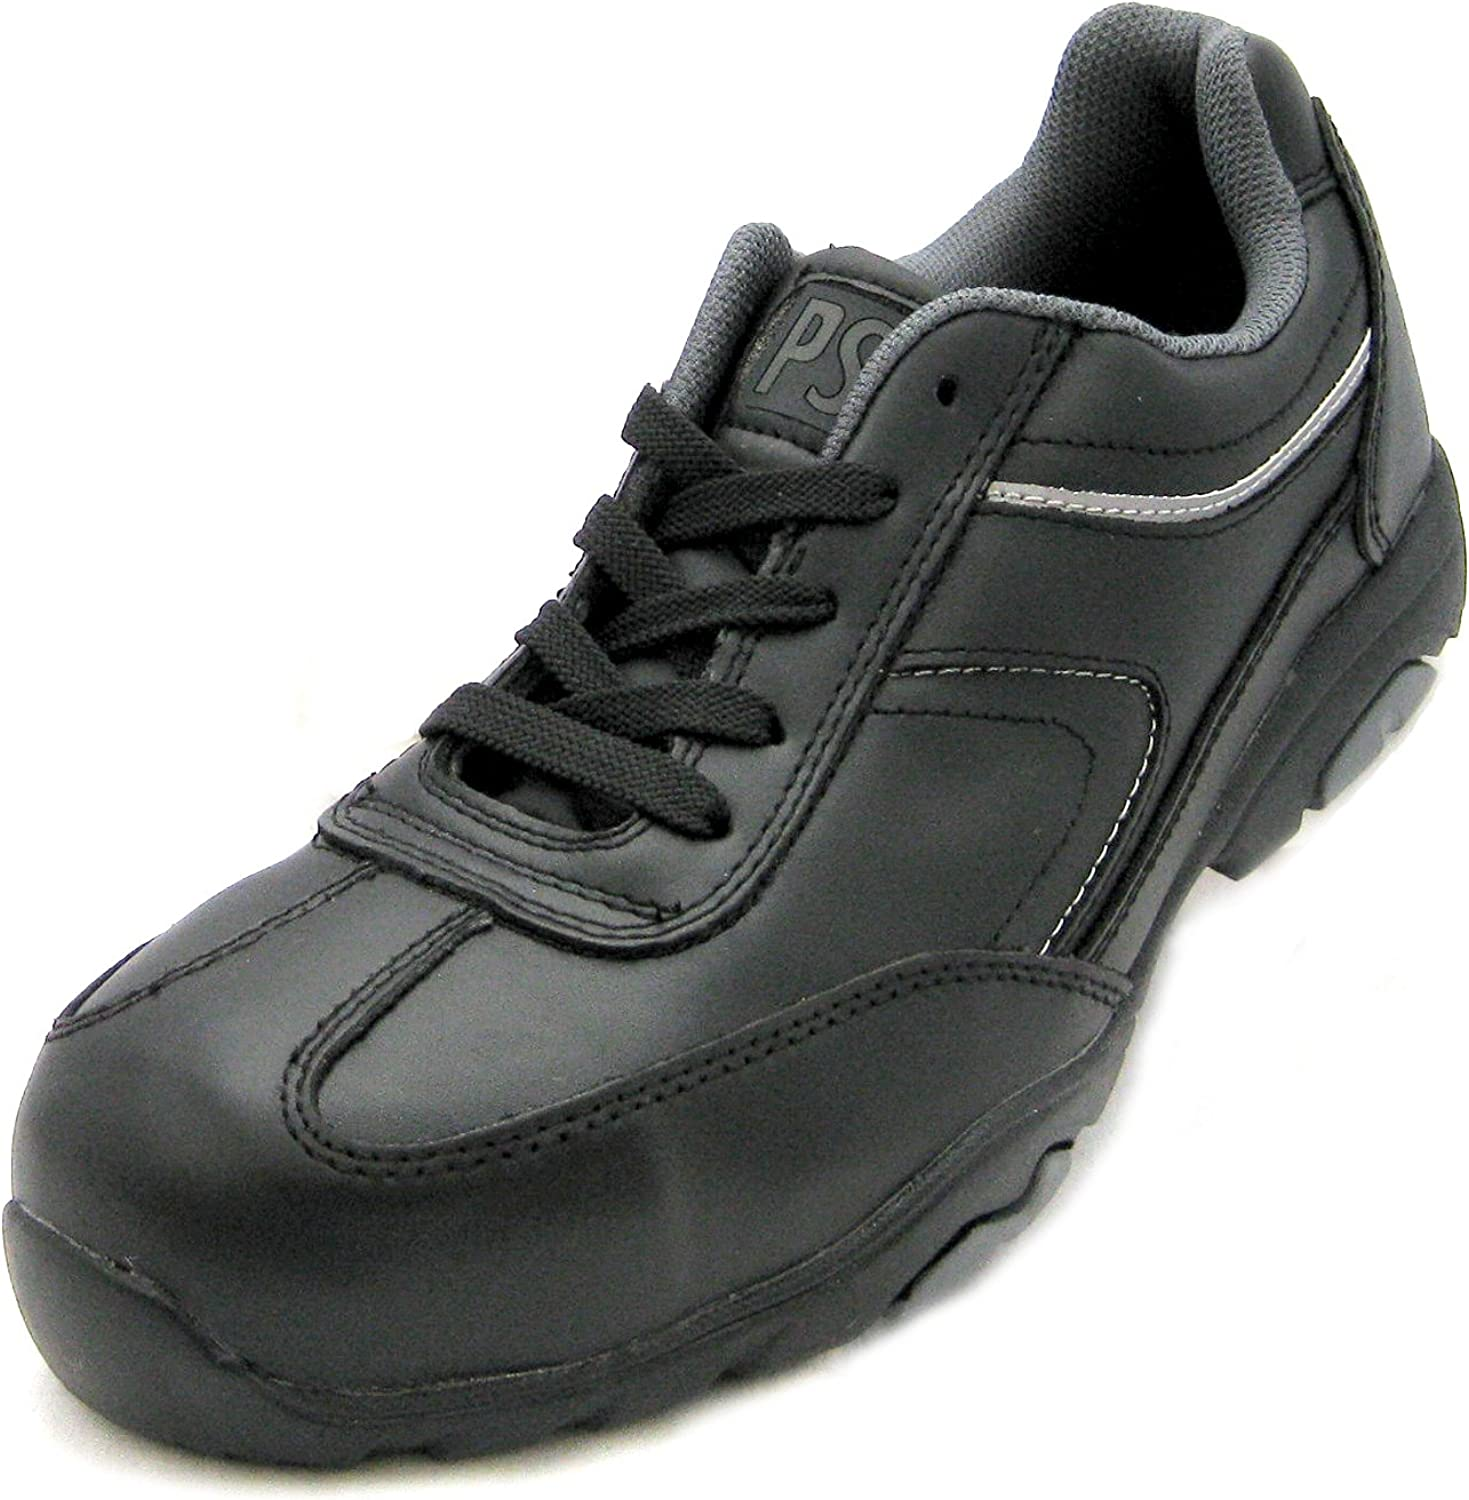 PSF Terrain Black Work Safety Trainers With Non Metal Composite Toe Cap